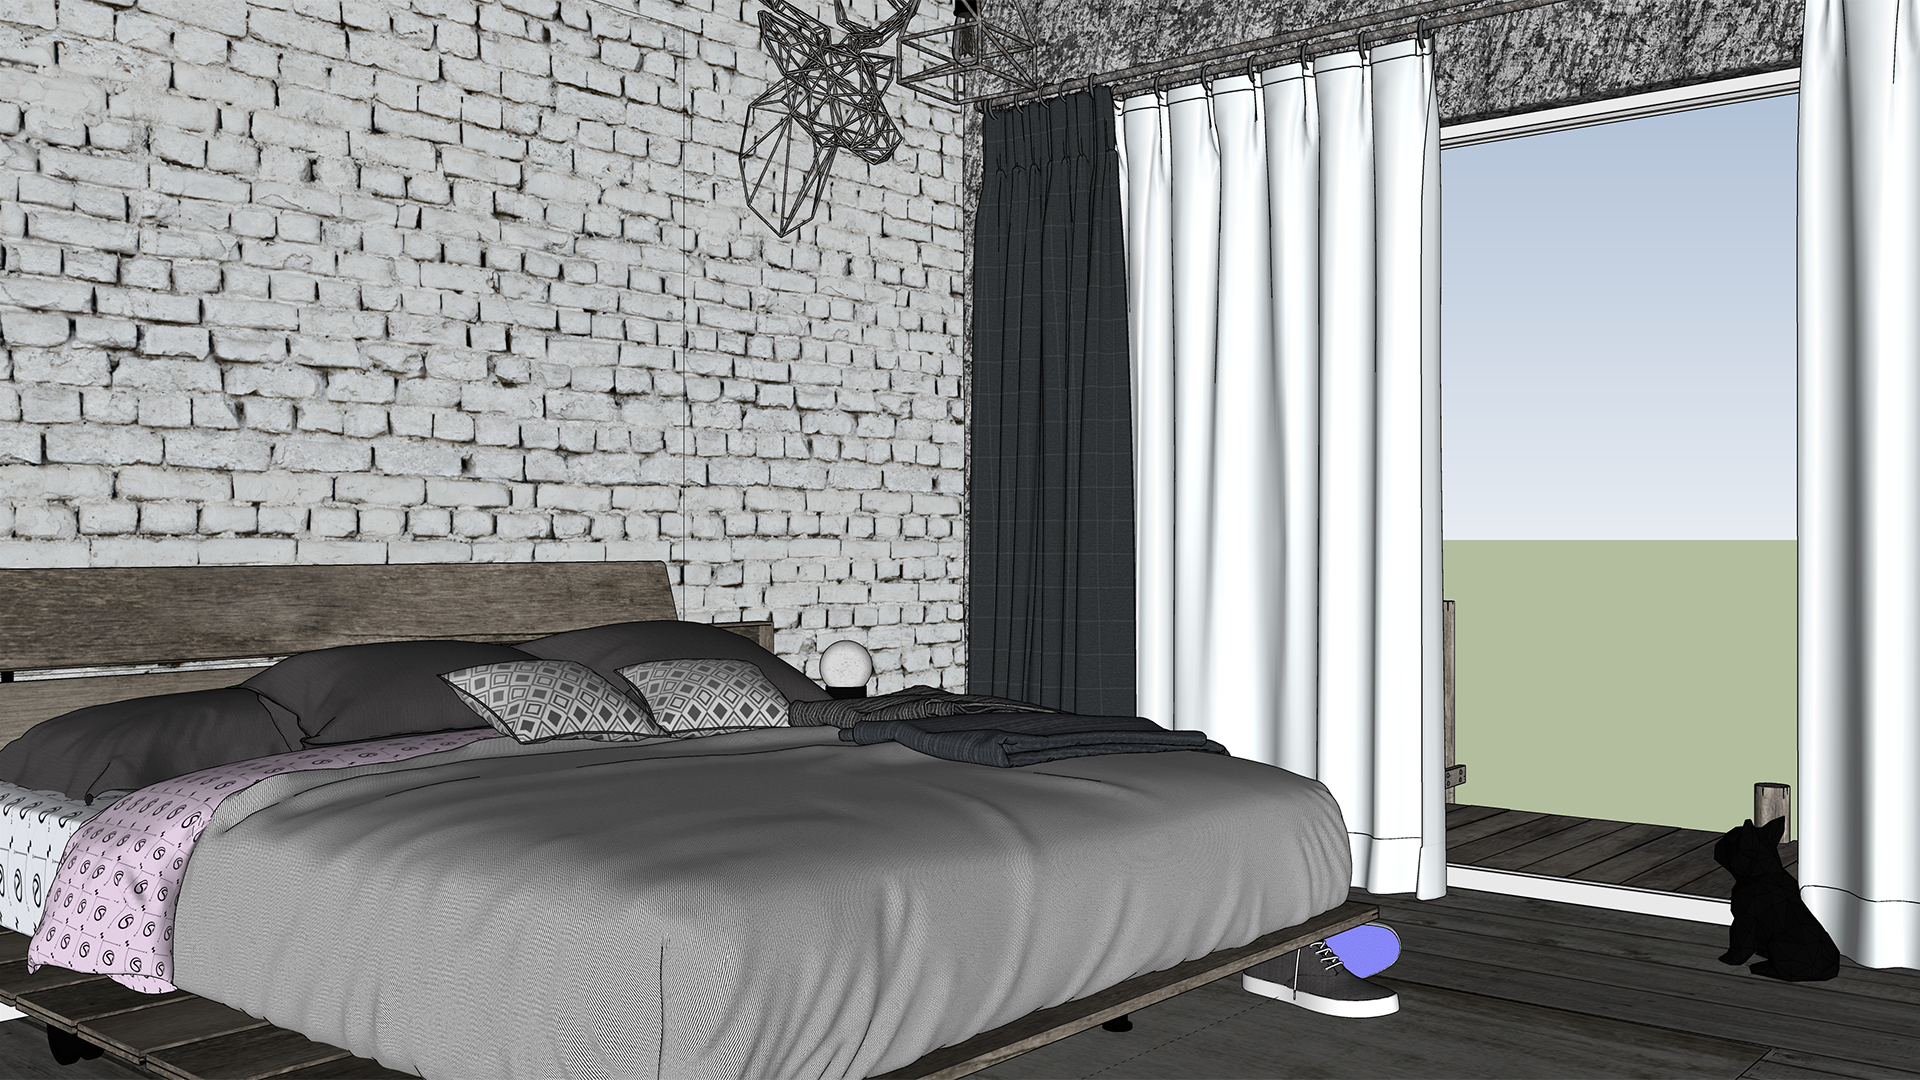 Industrial Bedroom View 1 Day Screenshot 1920.jpg